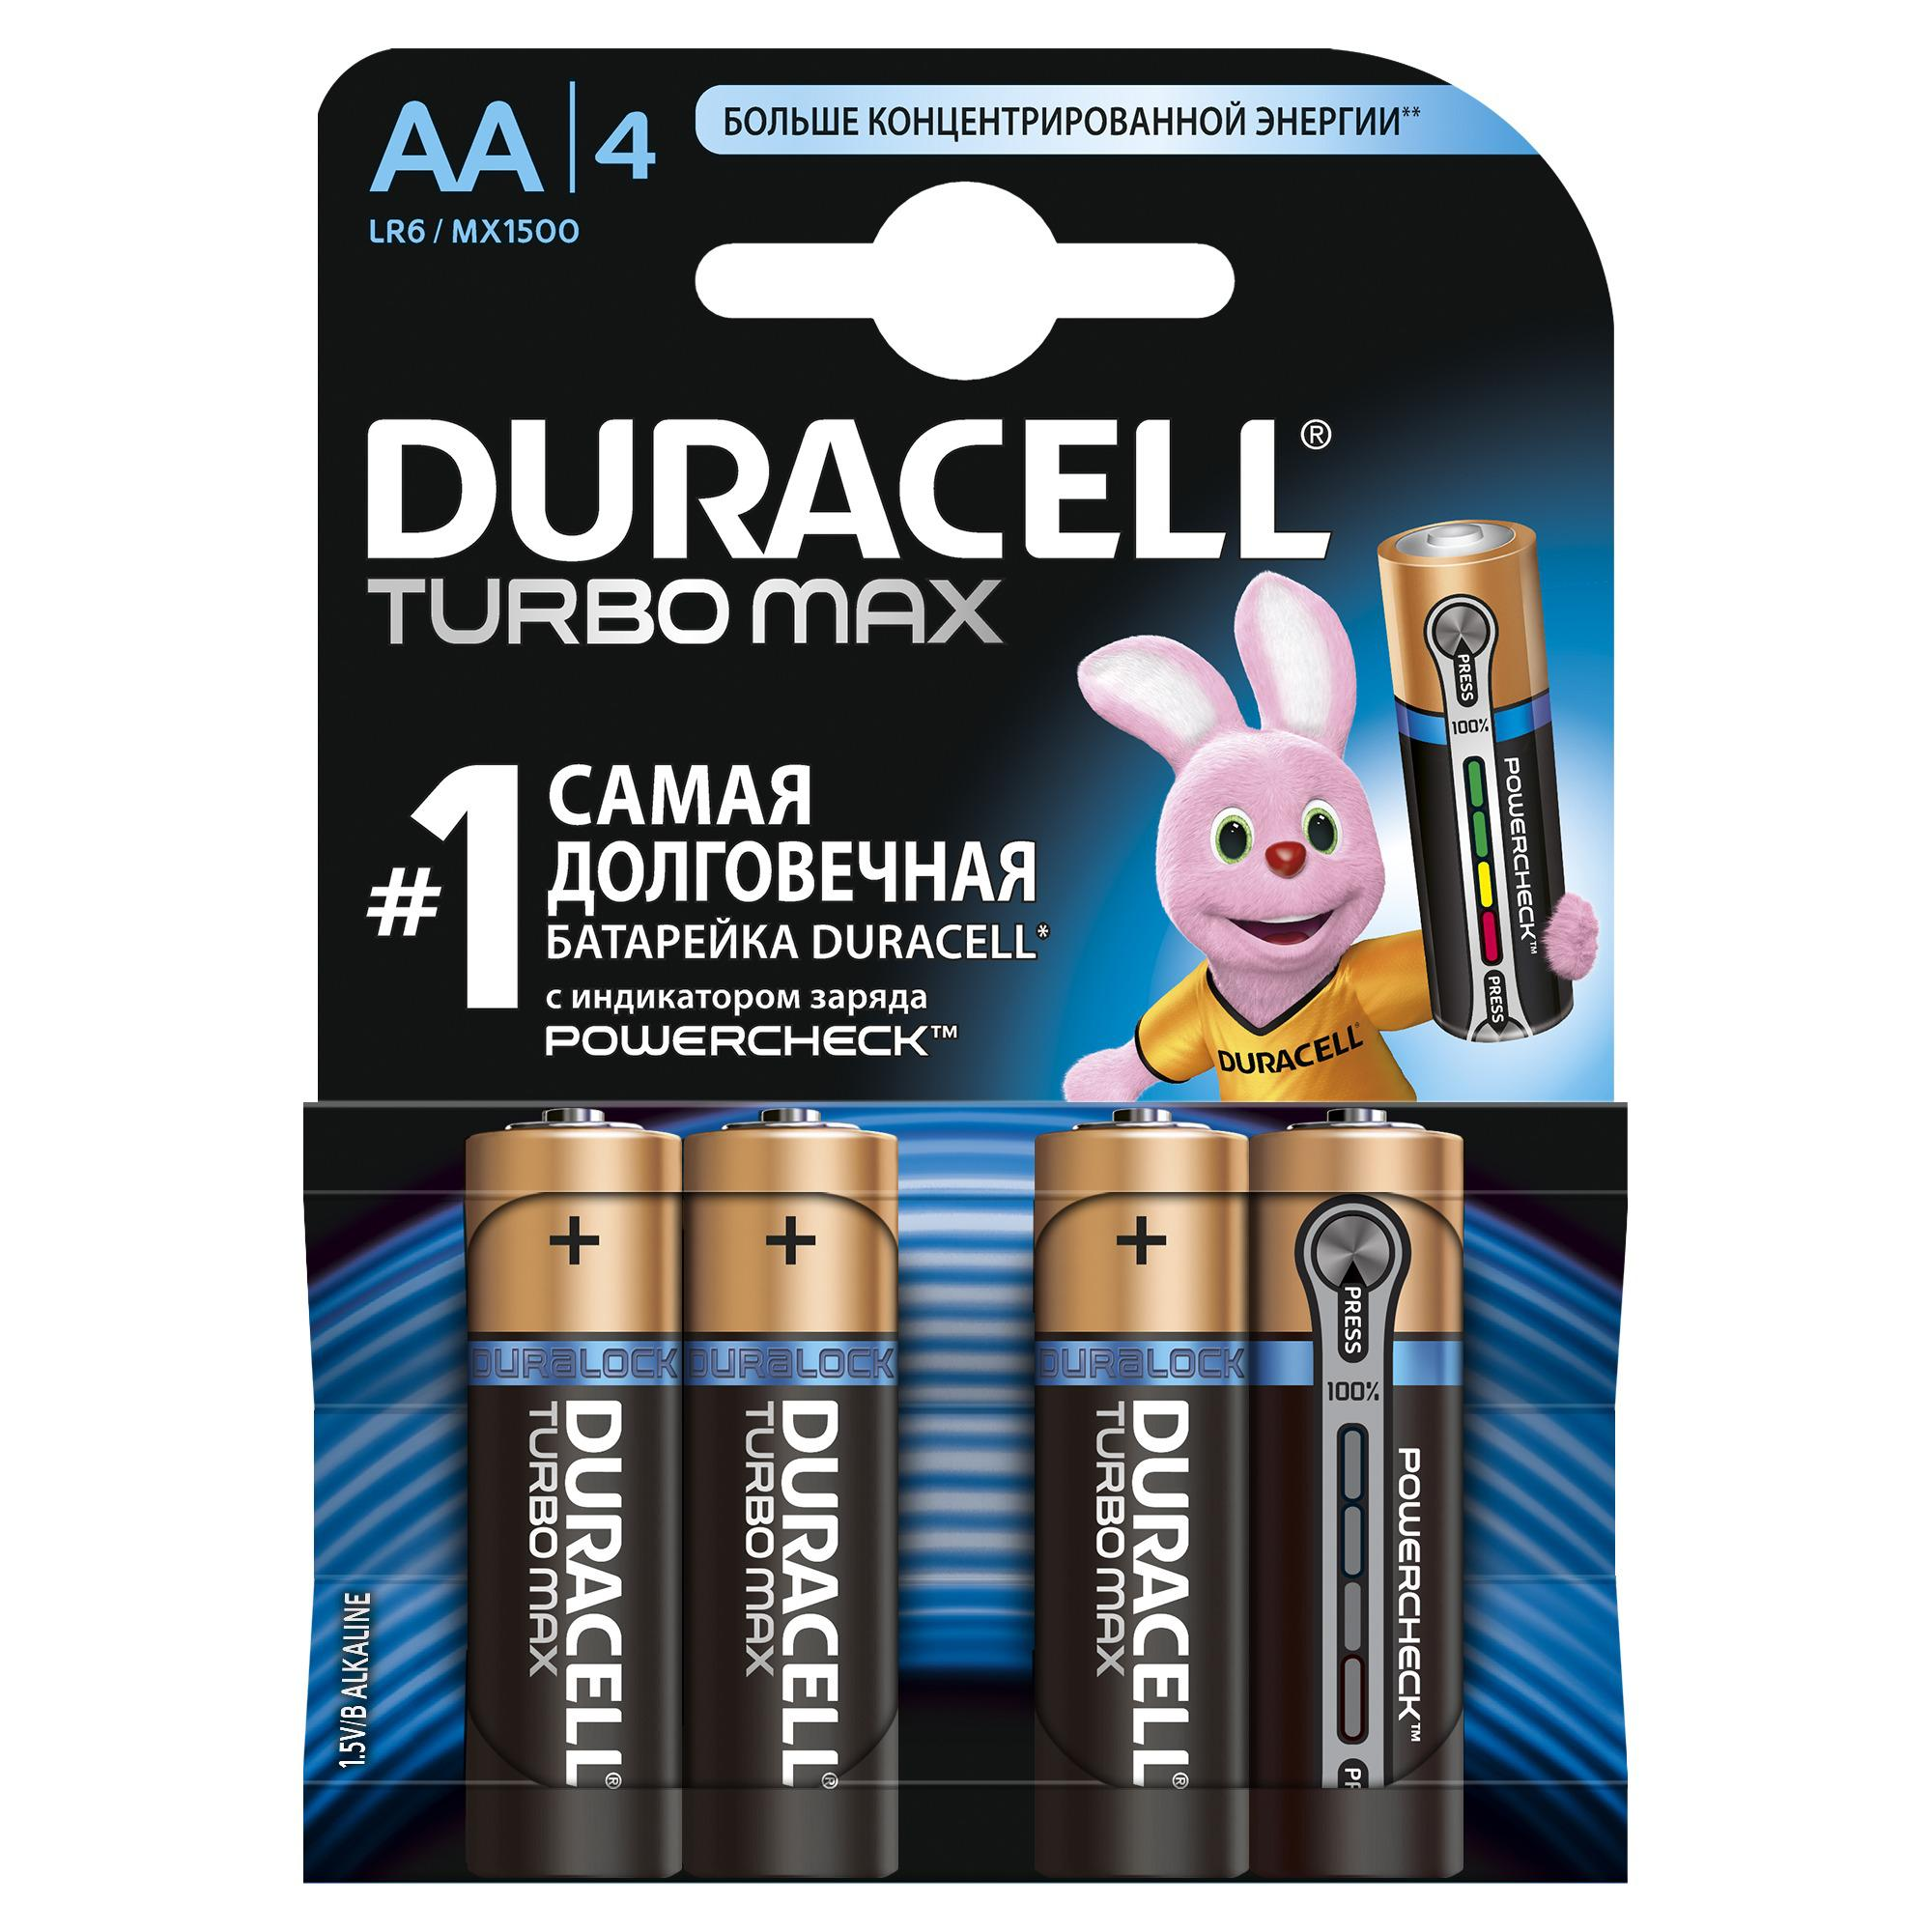 Батарейка Duracell Lr6-4bl turbo Б0014049 gt2556s 711736 711736 0003 711736 0010 711736 0016 711736 0026 2674a226 2674a227 turbo for perkin massey 5455 4 4l 420d it